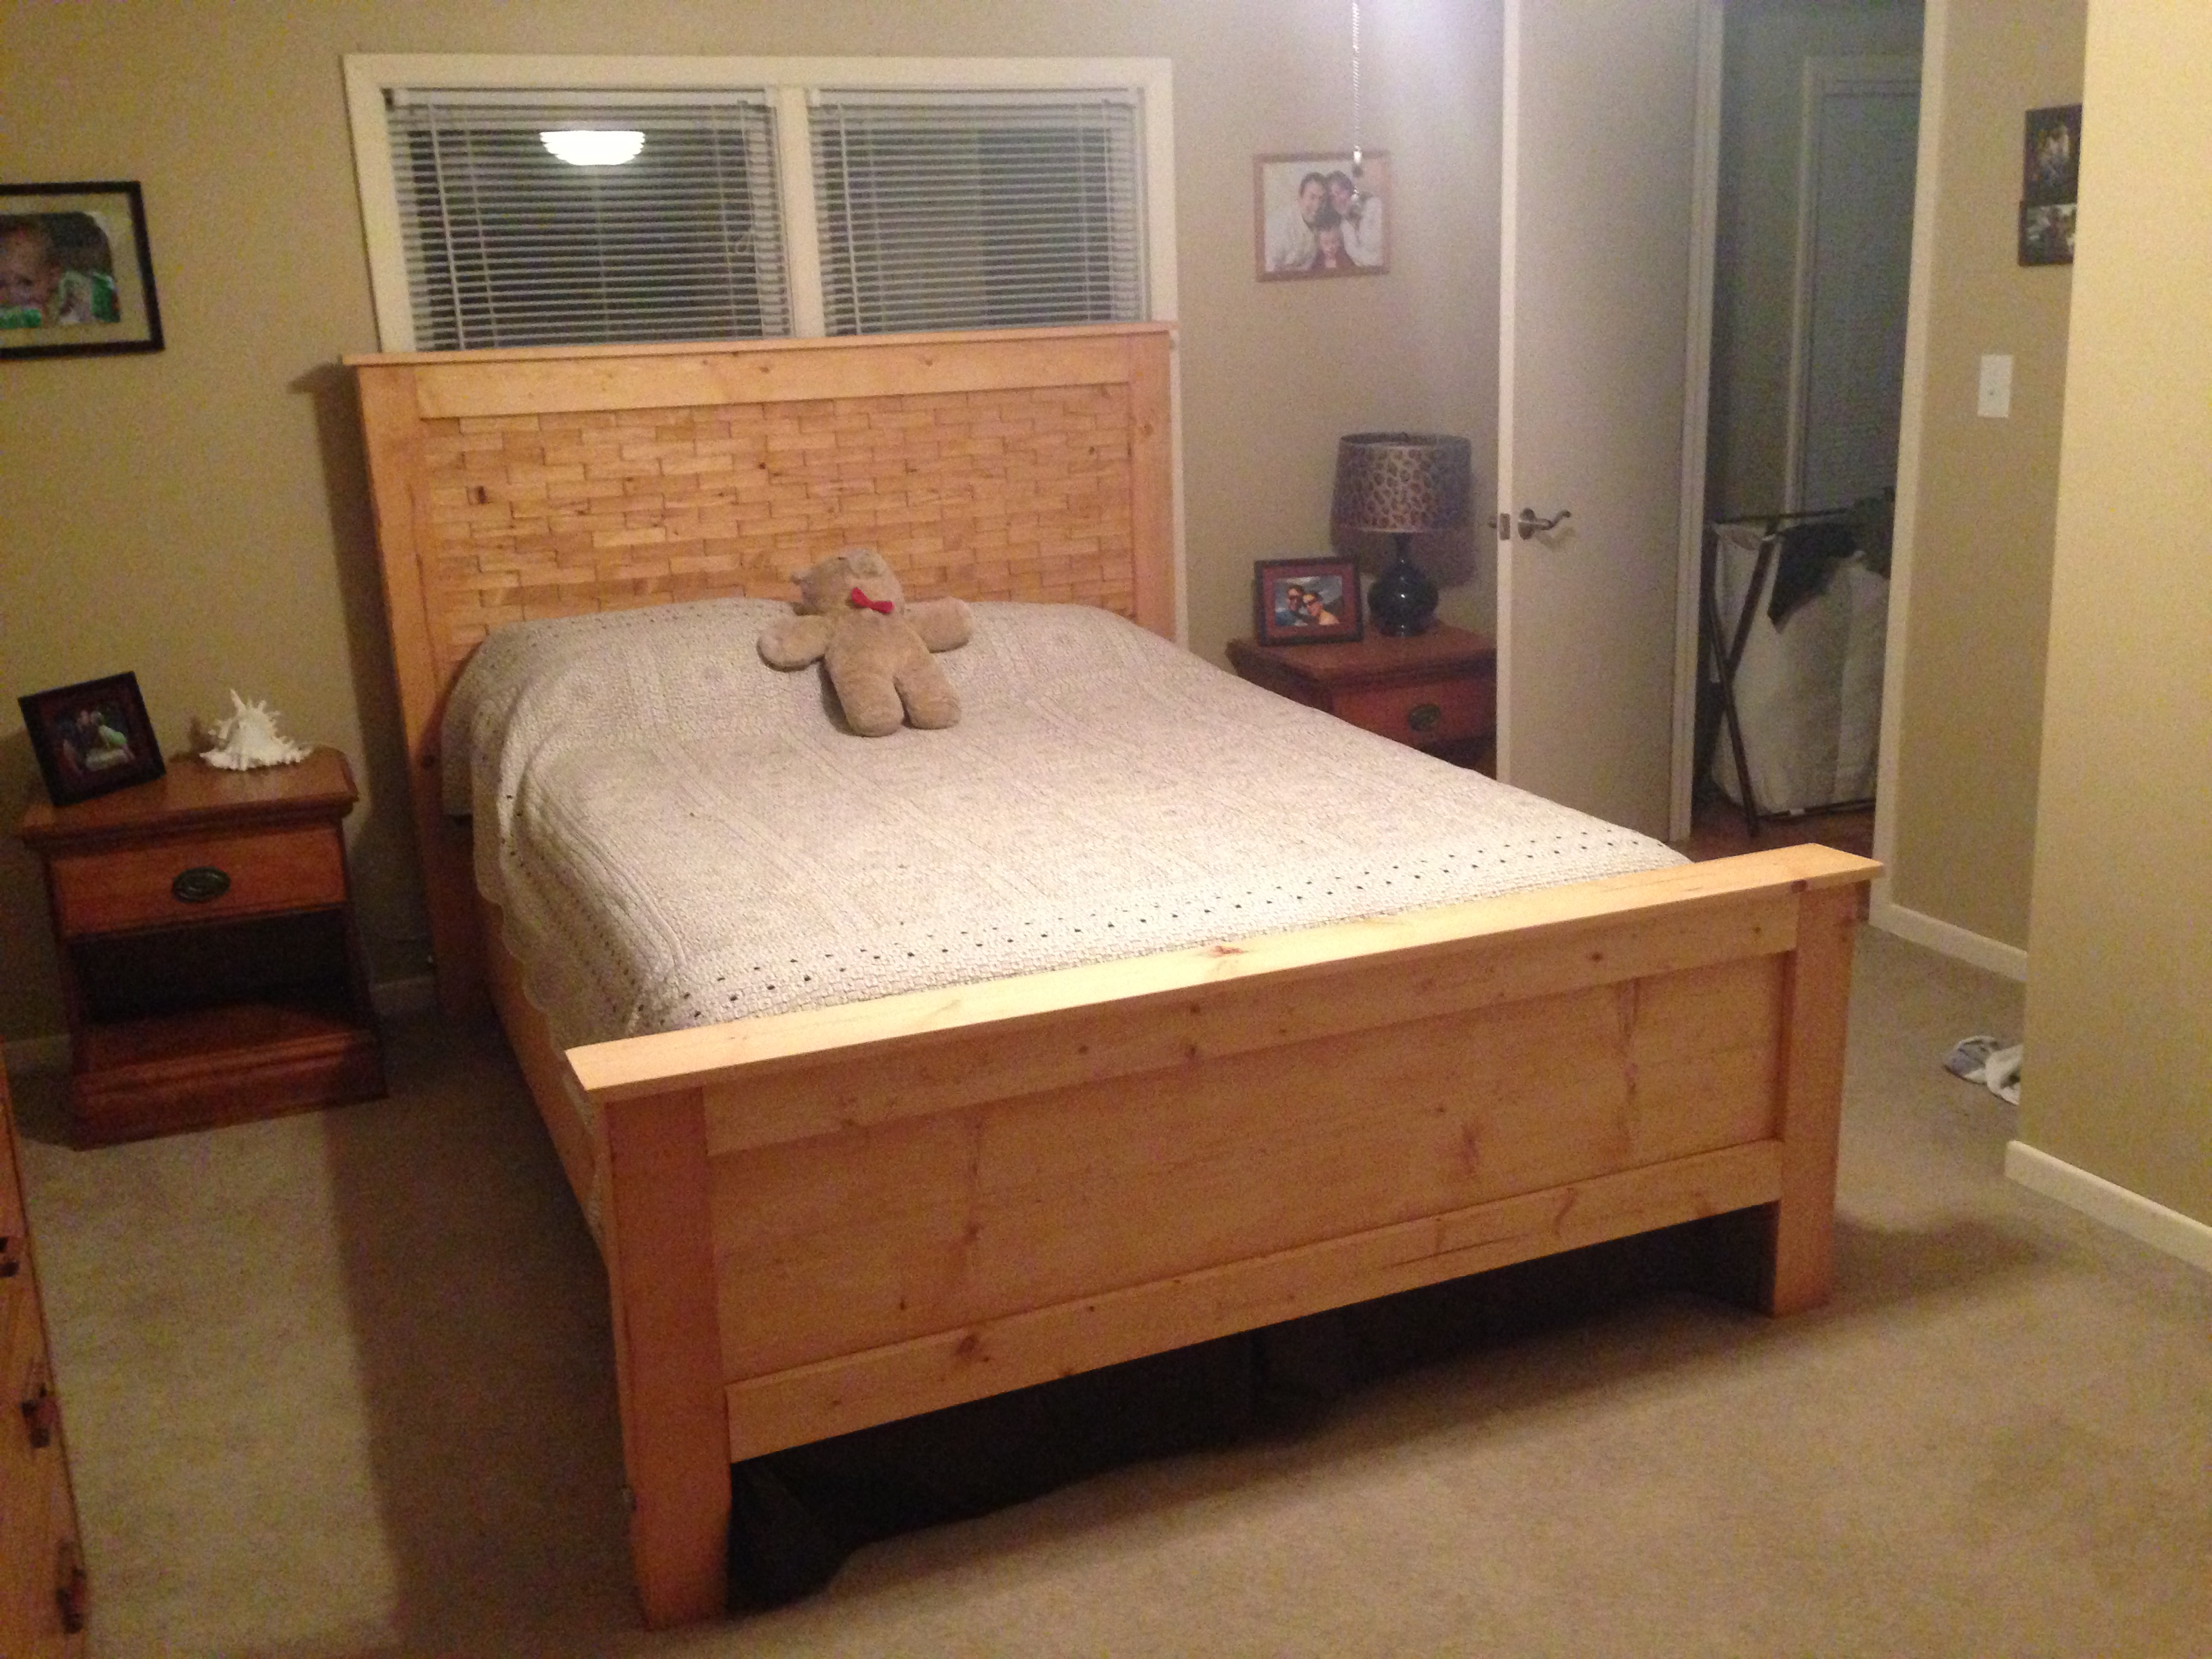 Diy Wood Bed Frame Plans diy wood shim bed plans - queen do it ...